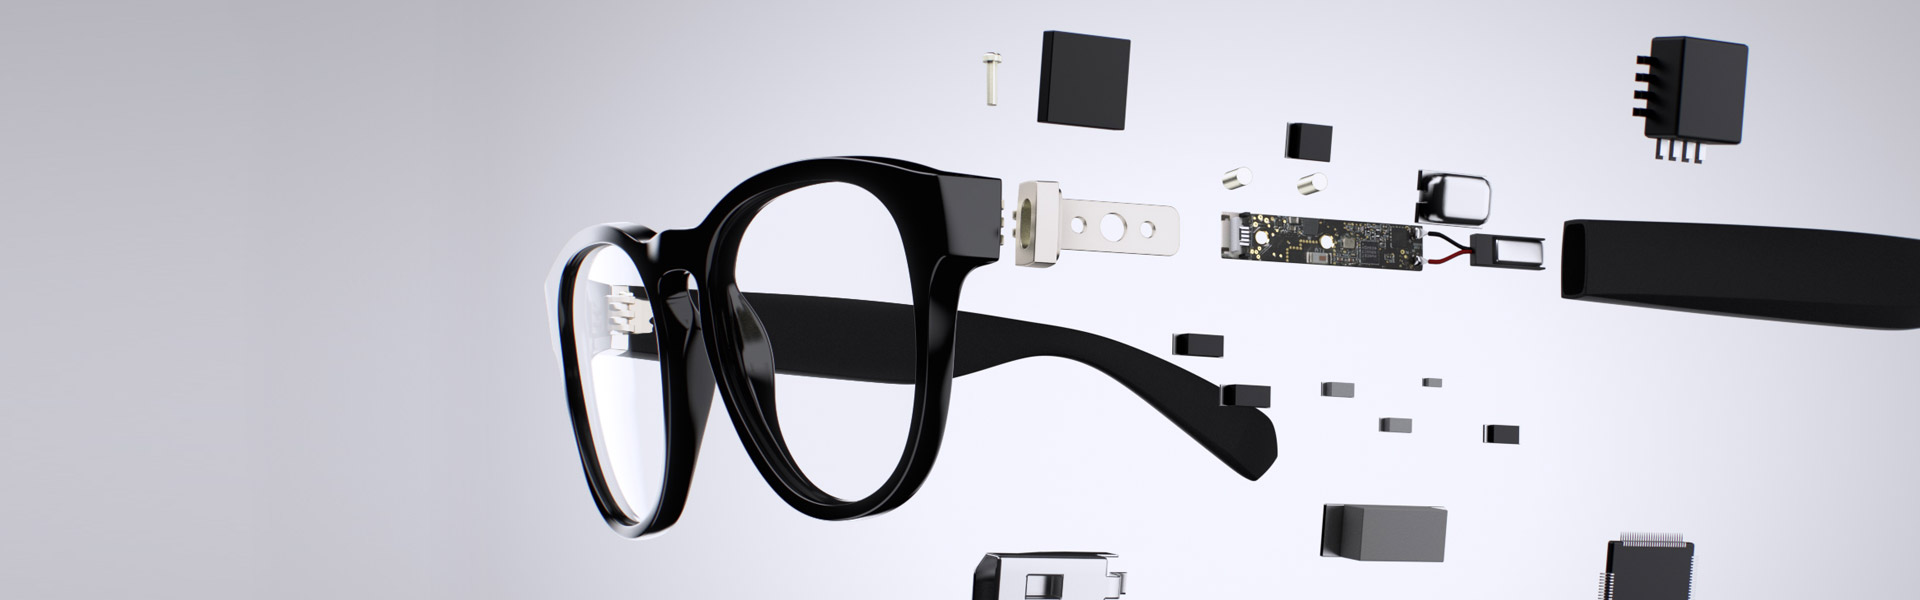 Innovation Tucked Inside the Eyeglass Frame